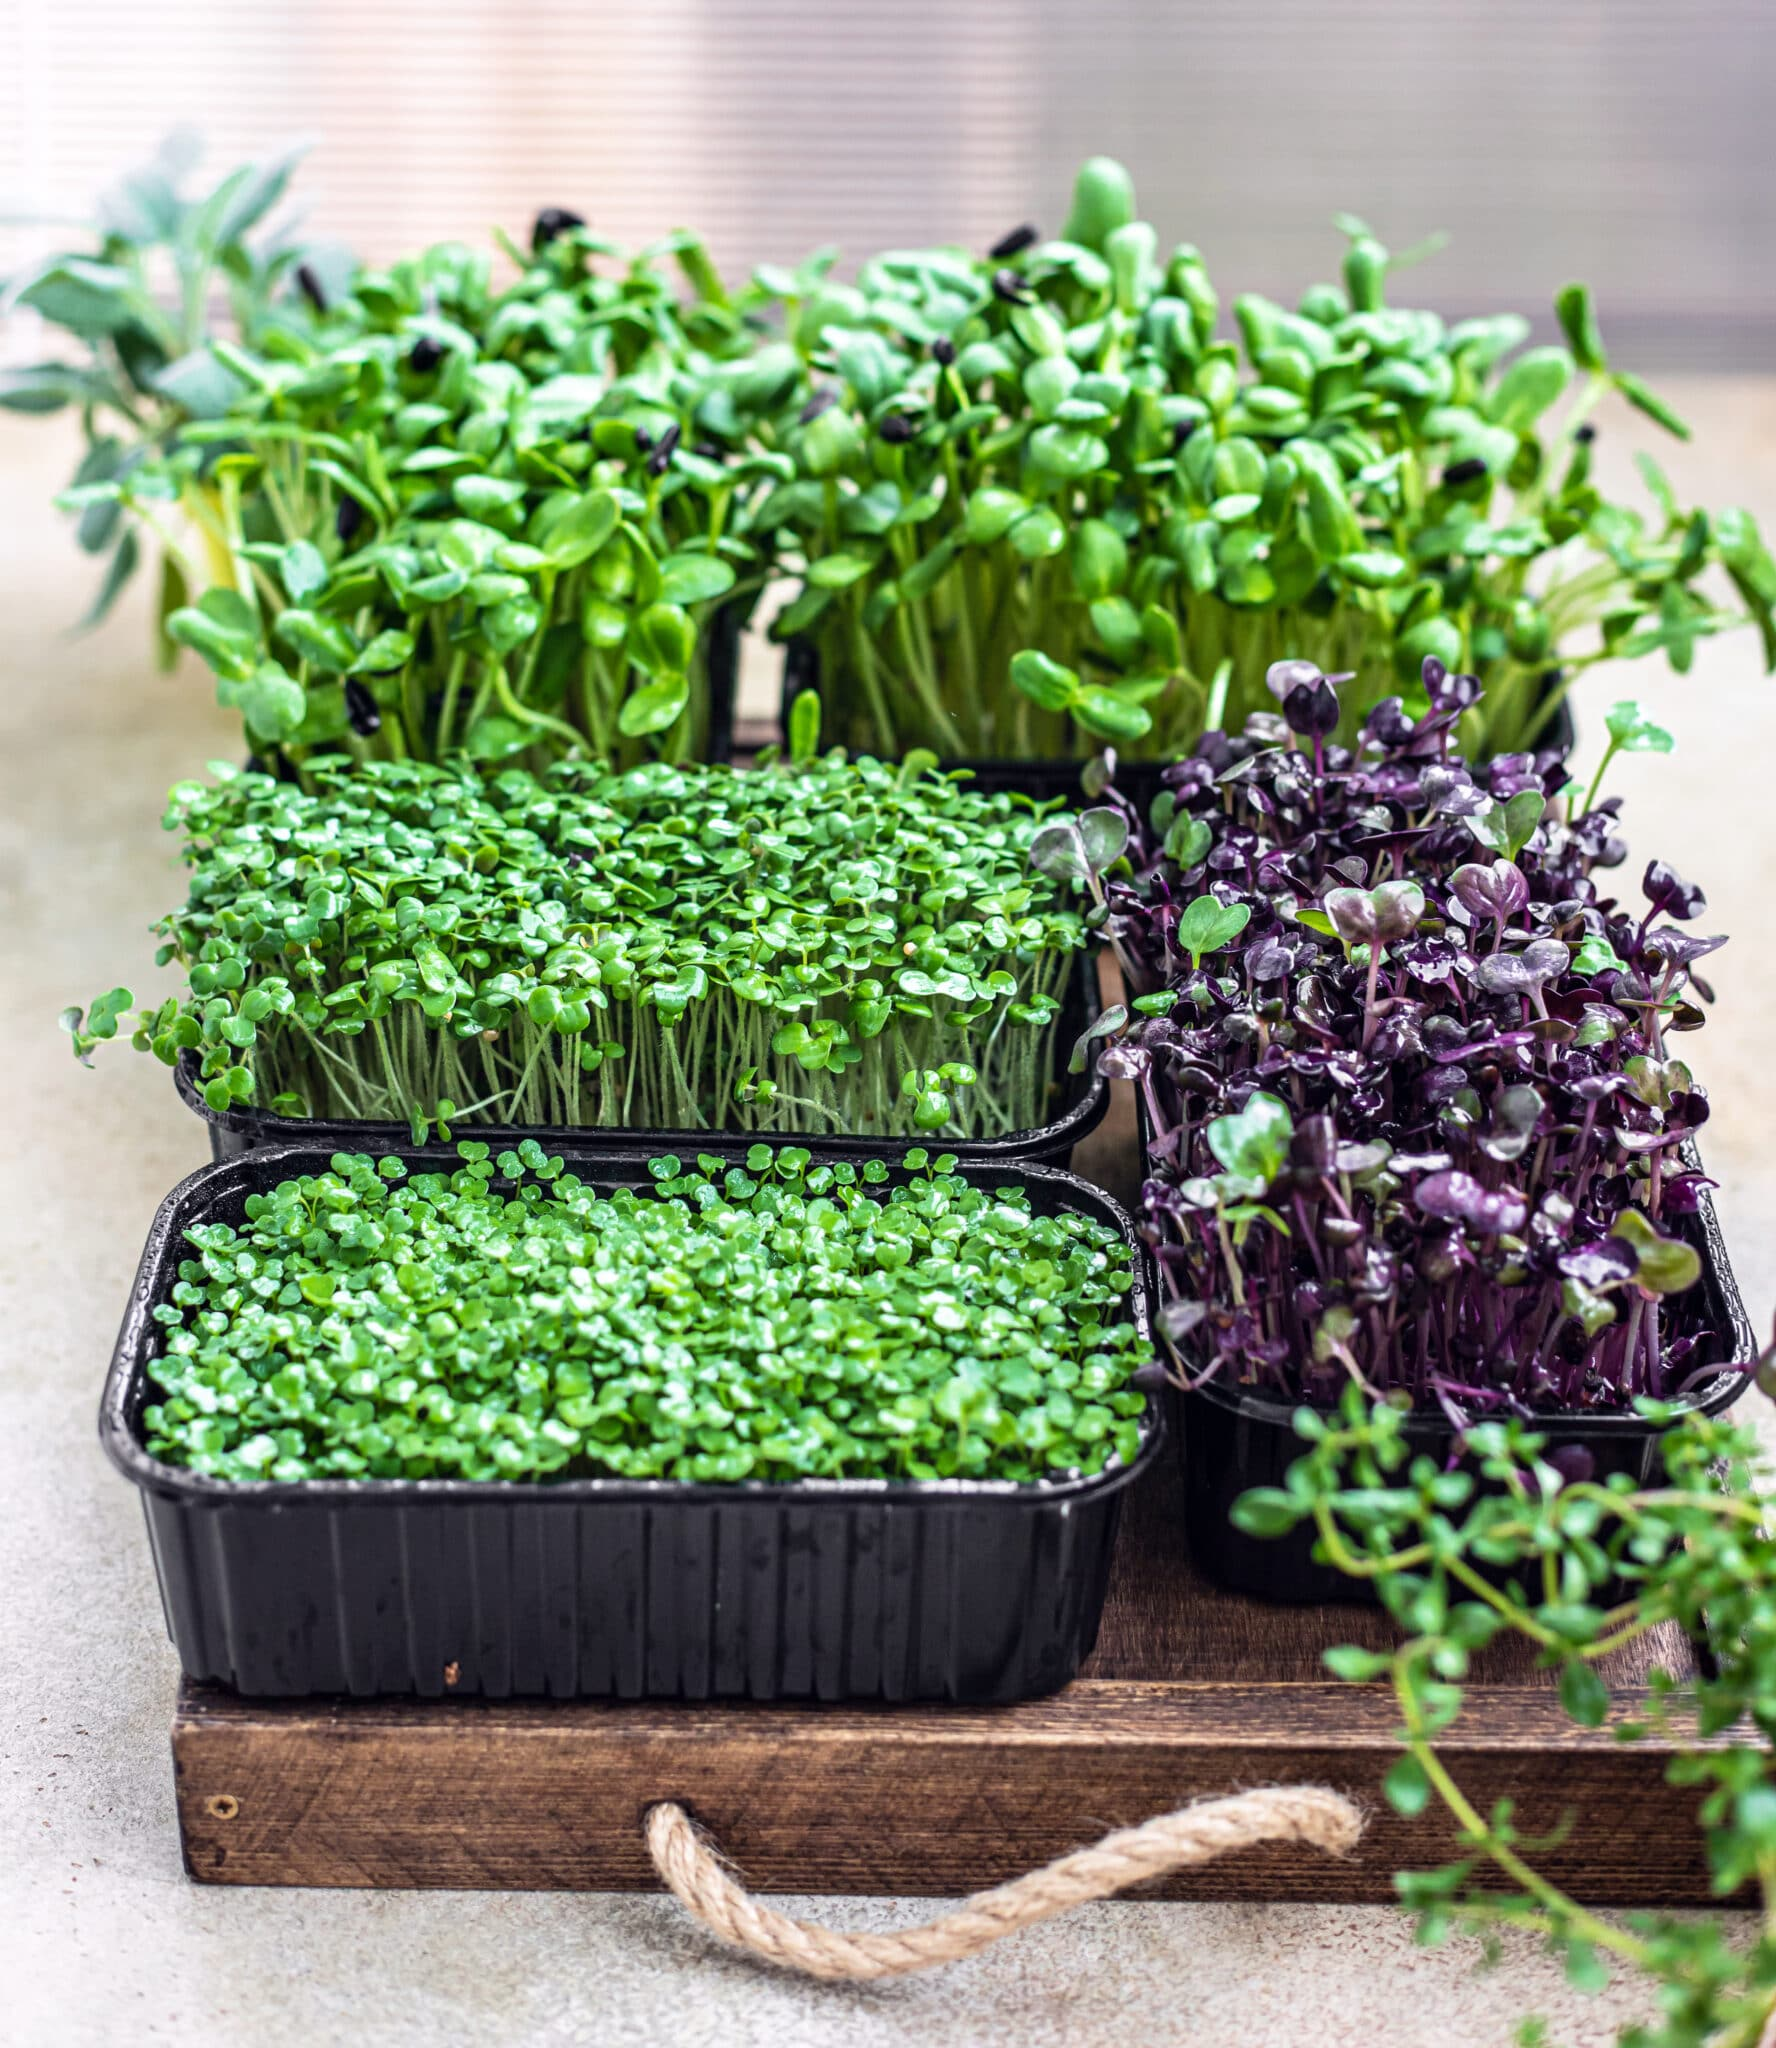 A tray full of freshly sprouted vegetables to grow indoors.